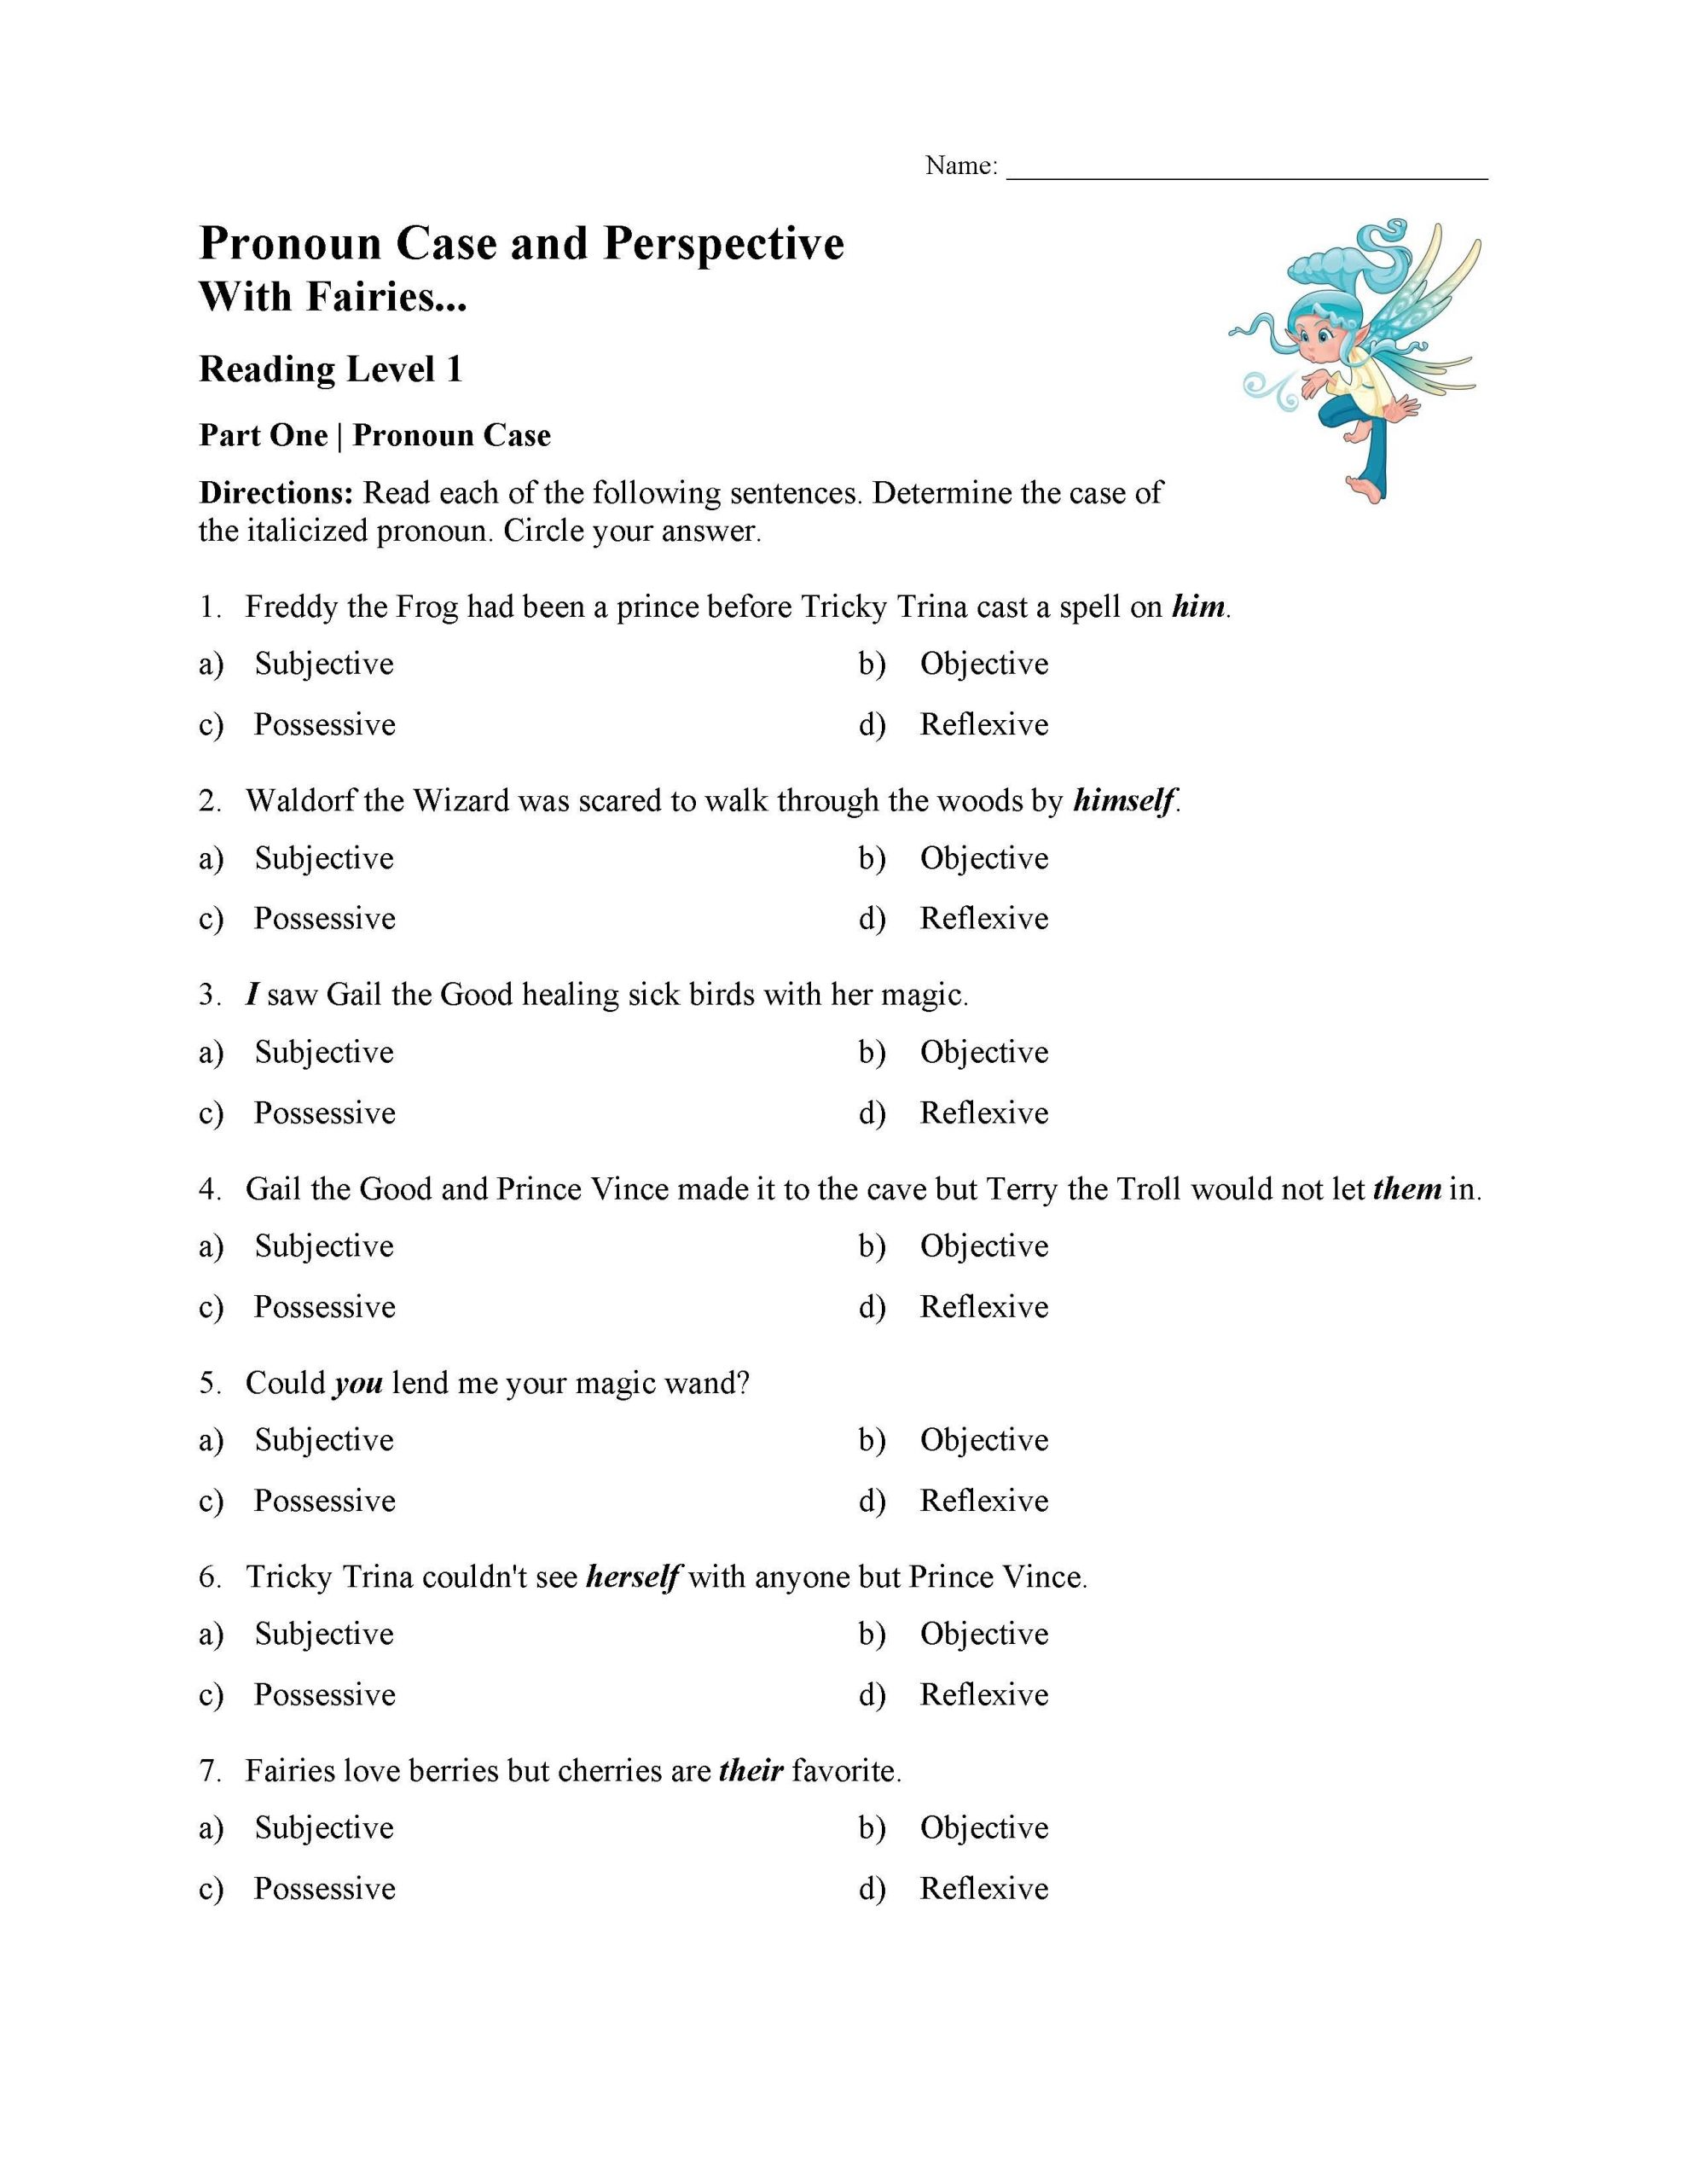 Pronoun Worksheets 5th Grade Pronoun Case and Perspective Test with Fairies